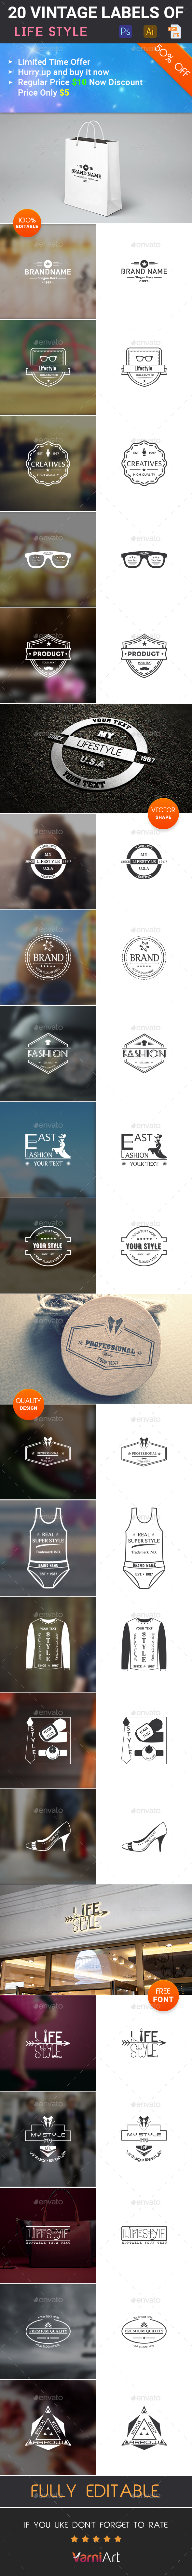 20 Lifestyle Vintage Labels - Badges & Stickers Web Elements